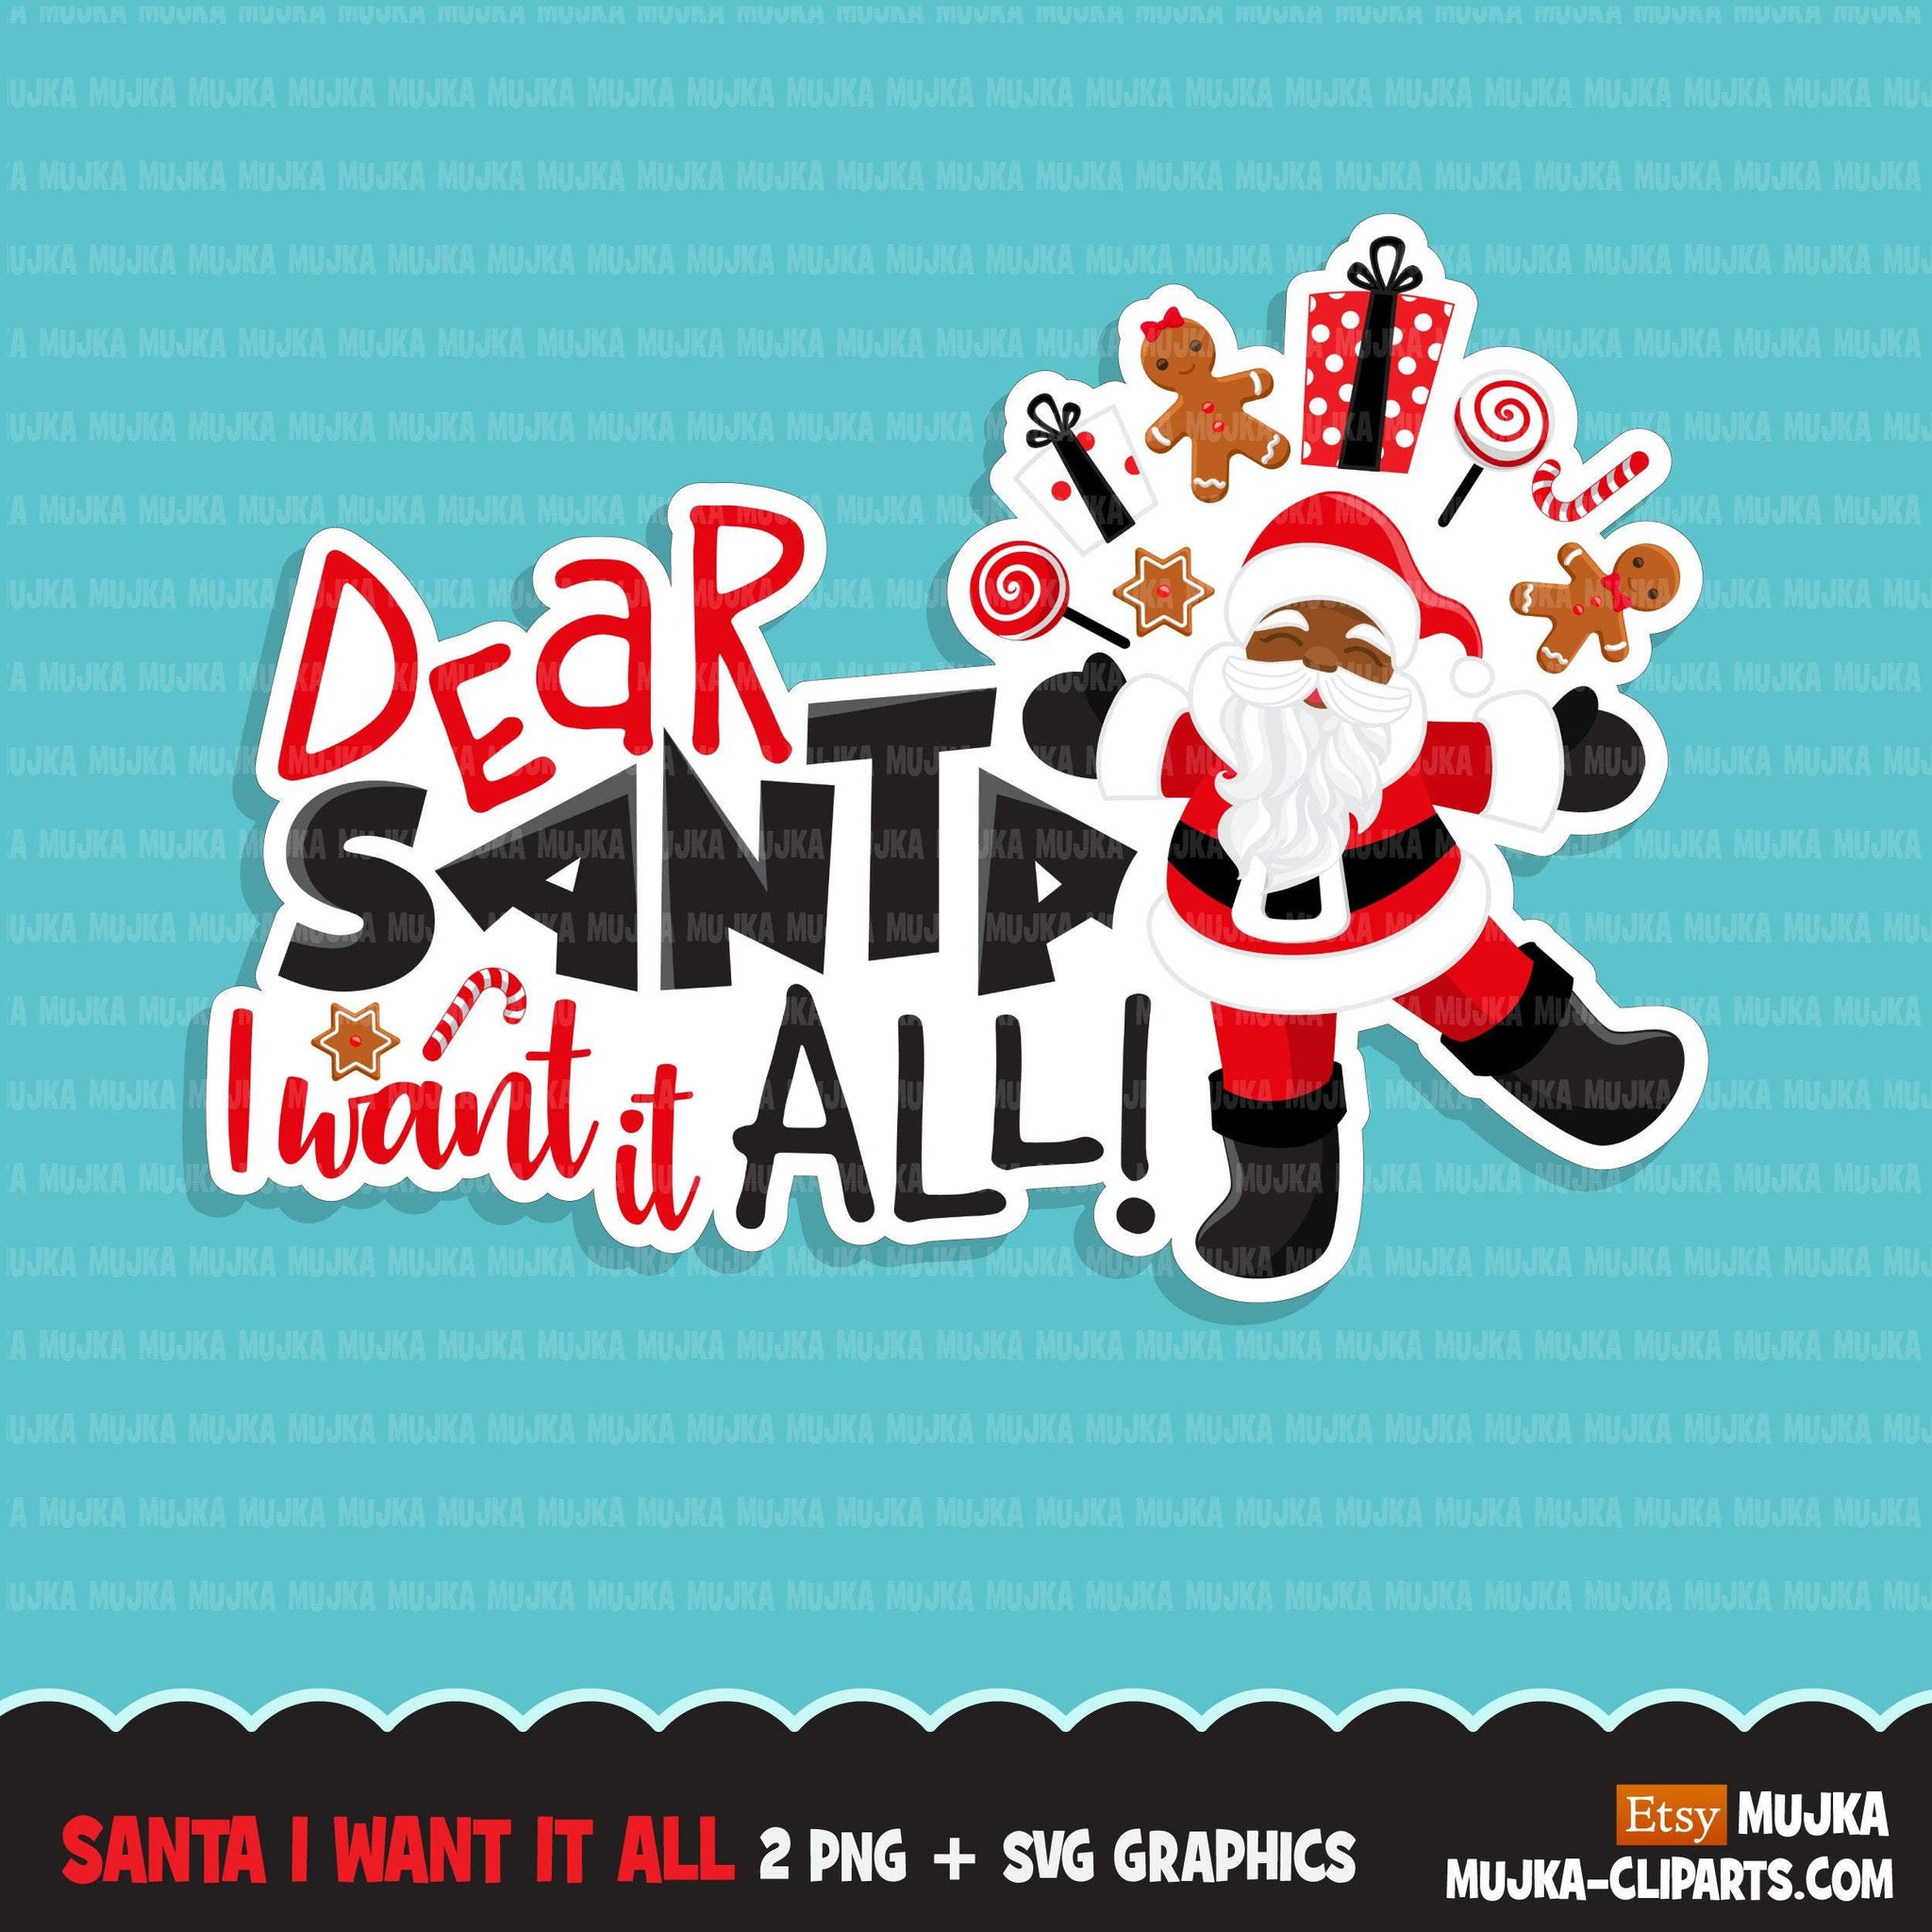 Santa I want it all Christmas Svg Png digital,  HTV sublimation image transfer clipart, t-shirt graphics